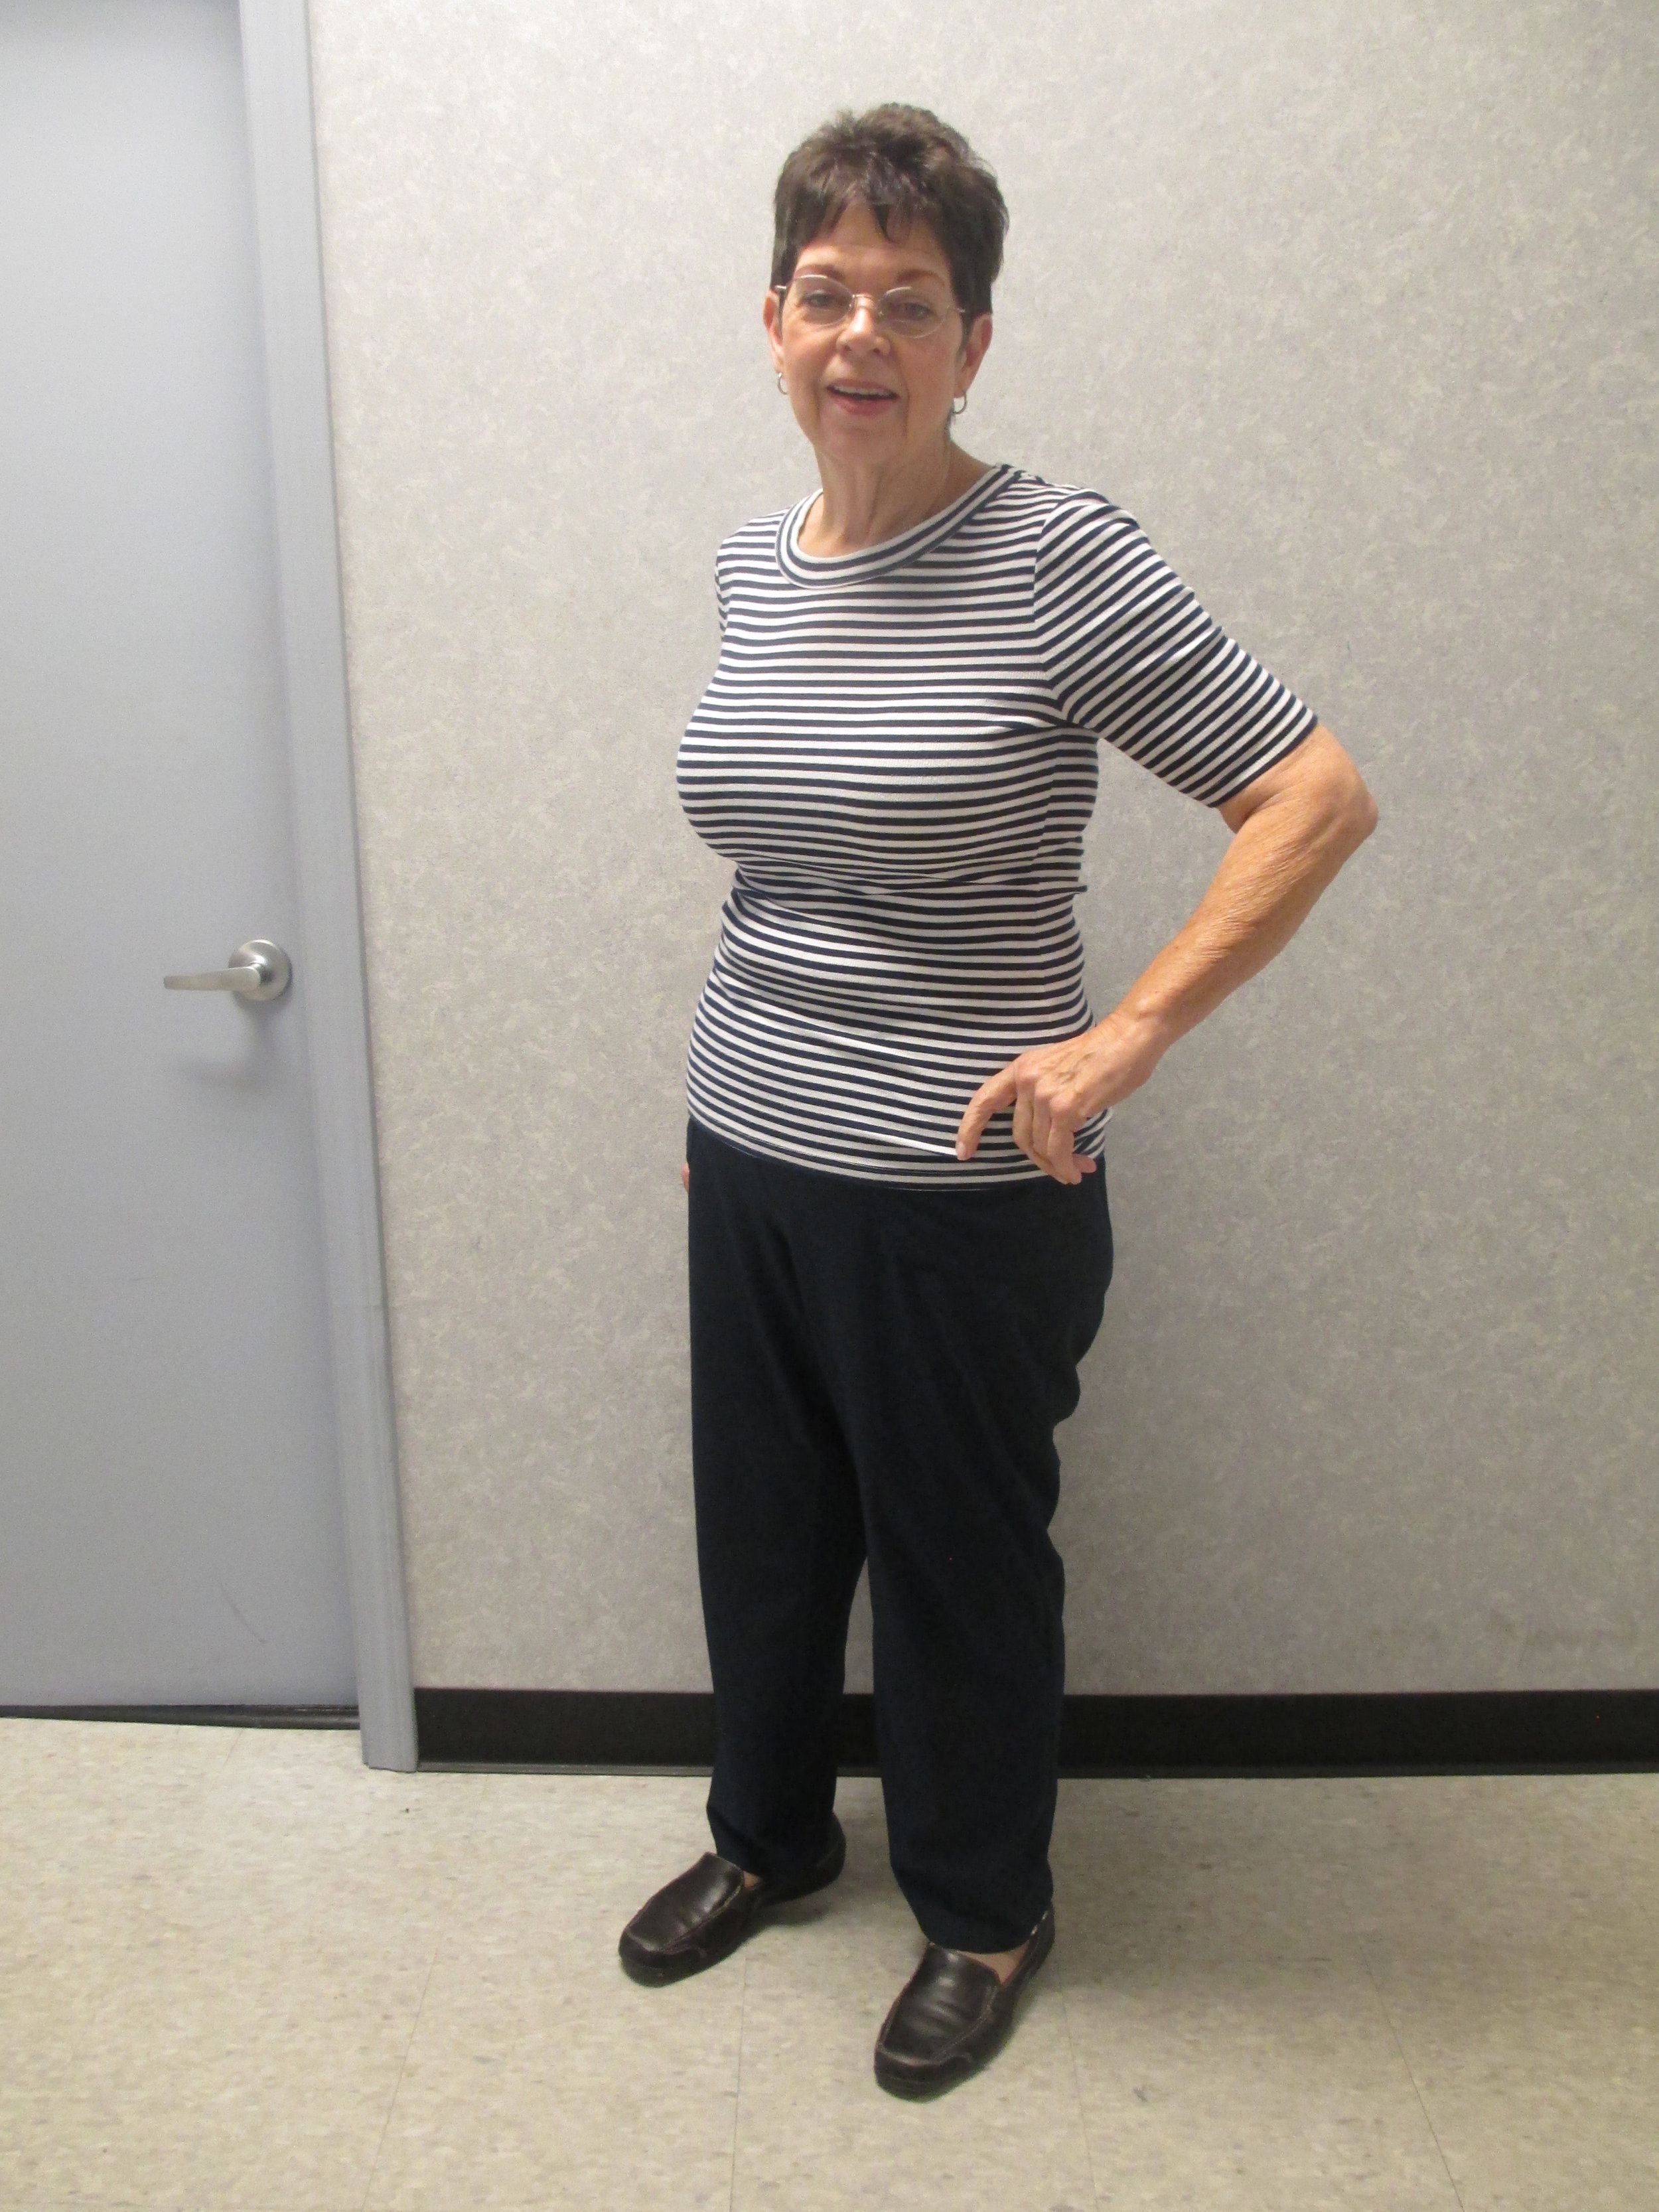 Judy Patterson is celebrating her health thanks to Medical Weight Loss Clinic.